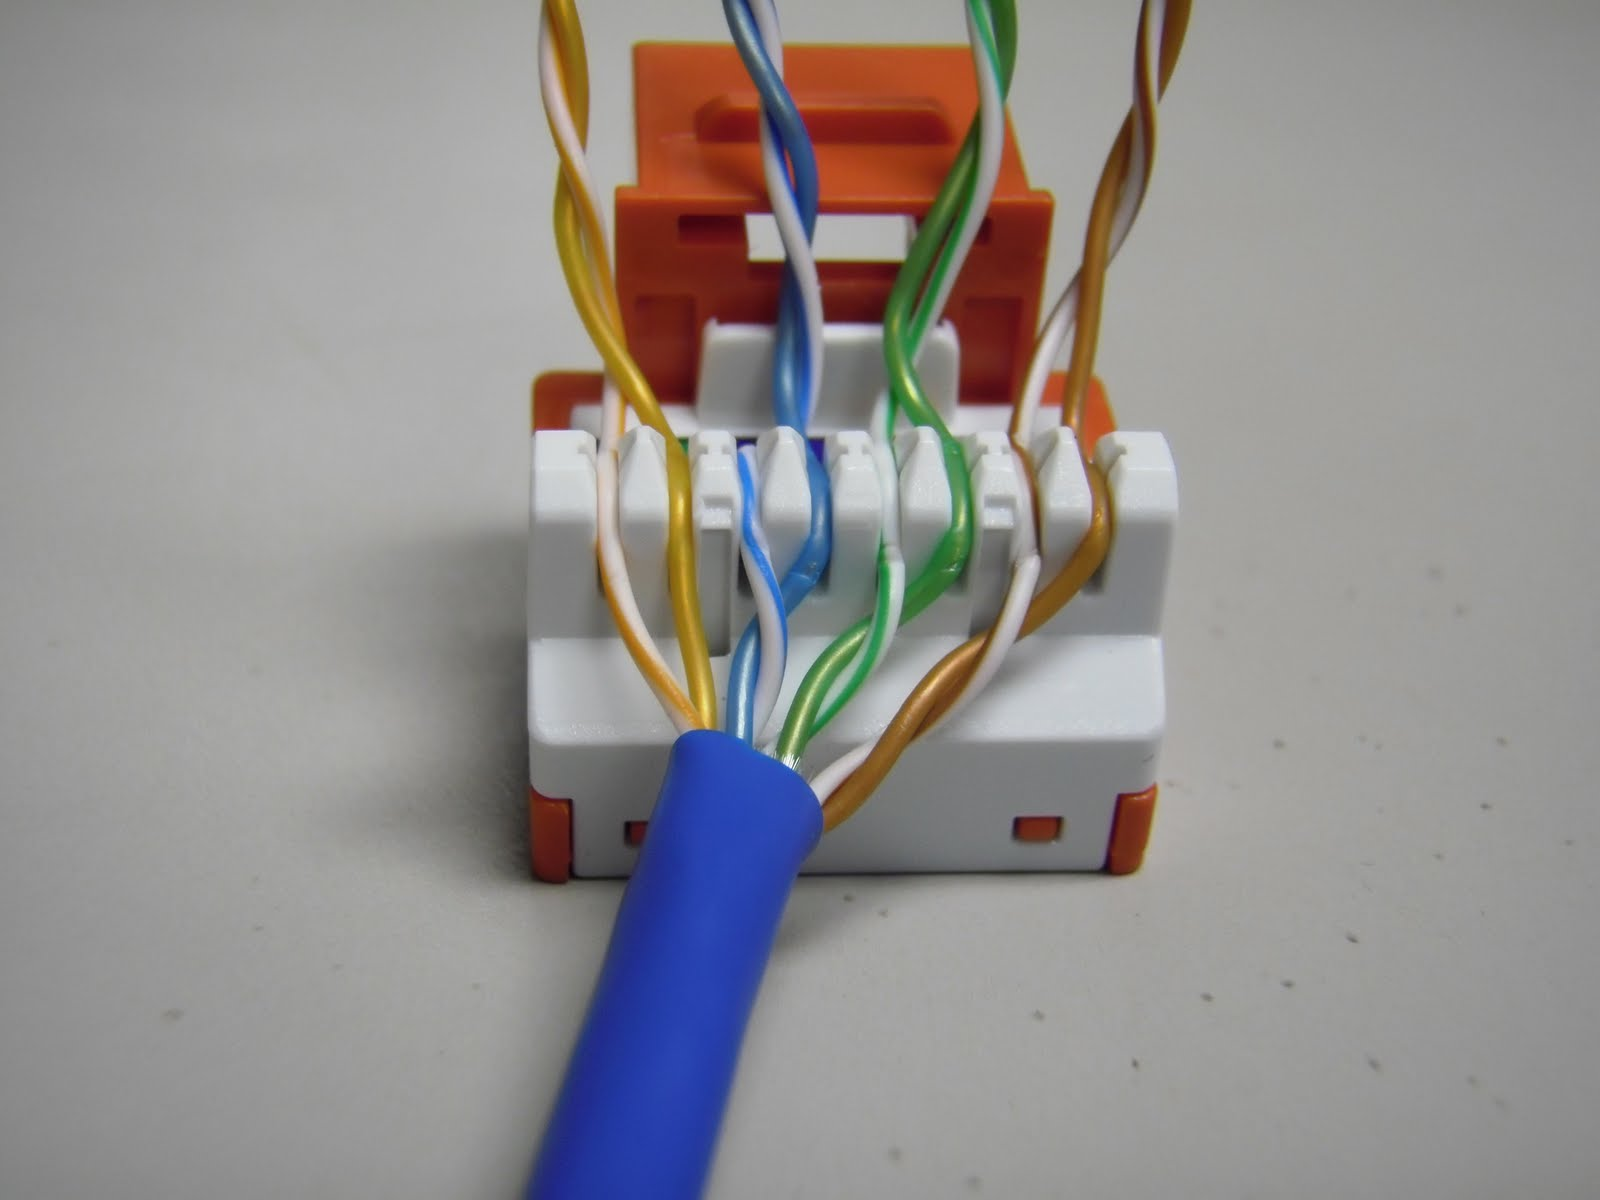 CAT5E+ER+JACK+WIRES+LACED the trench how to punch down cat5e cat6 keystone jacks ethernet wall jack wiring diagram at crackthecode.co